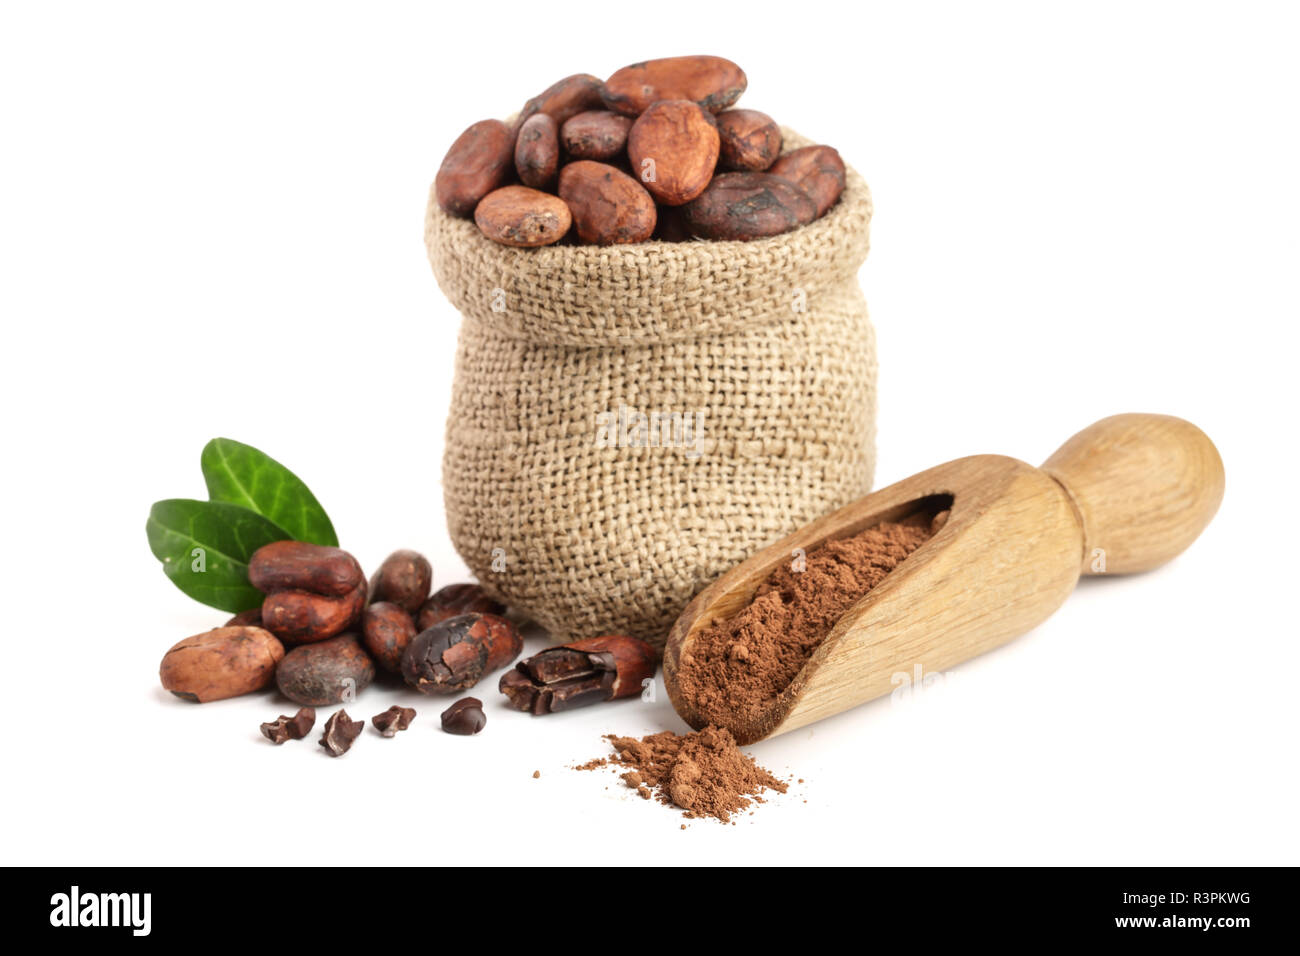 Cocoa beans in bag with leaves and cocoa powder in scoop isolated on white background - Stock Image